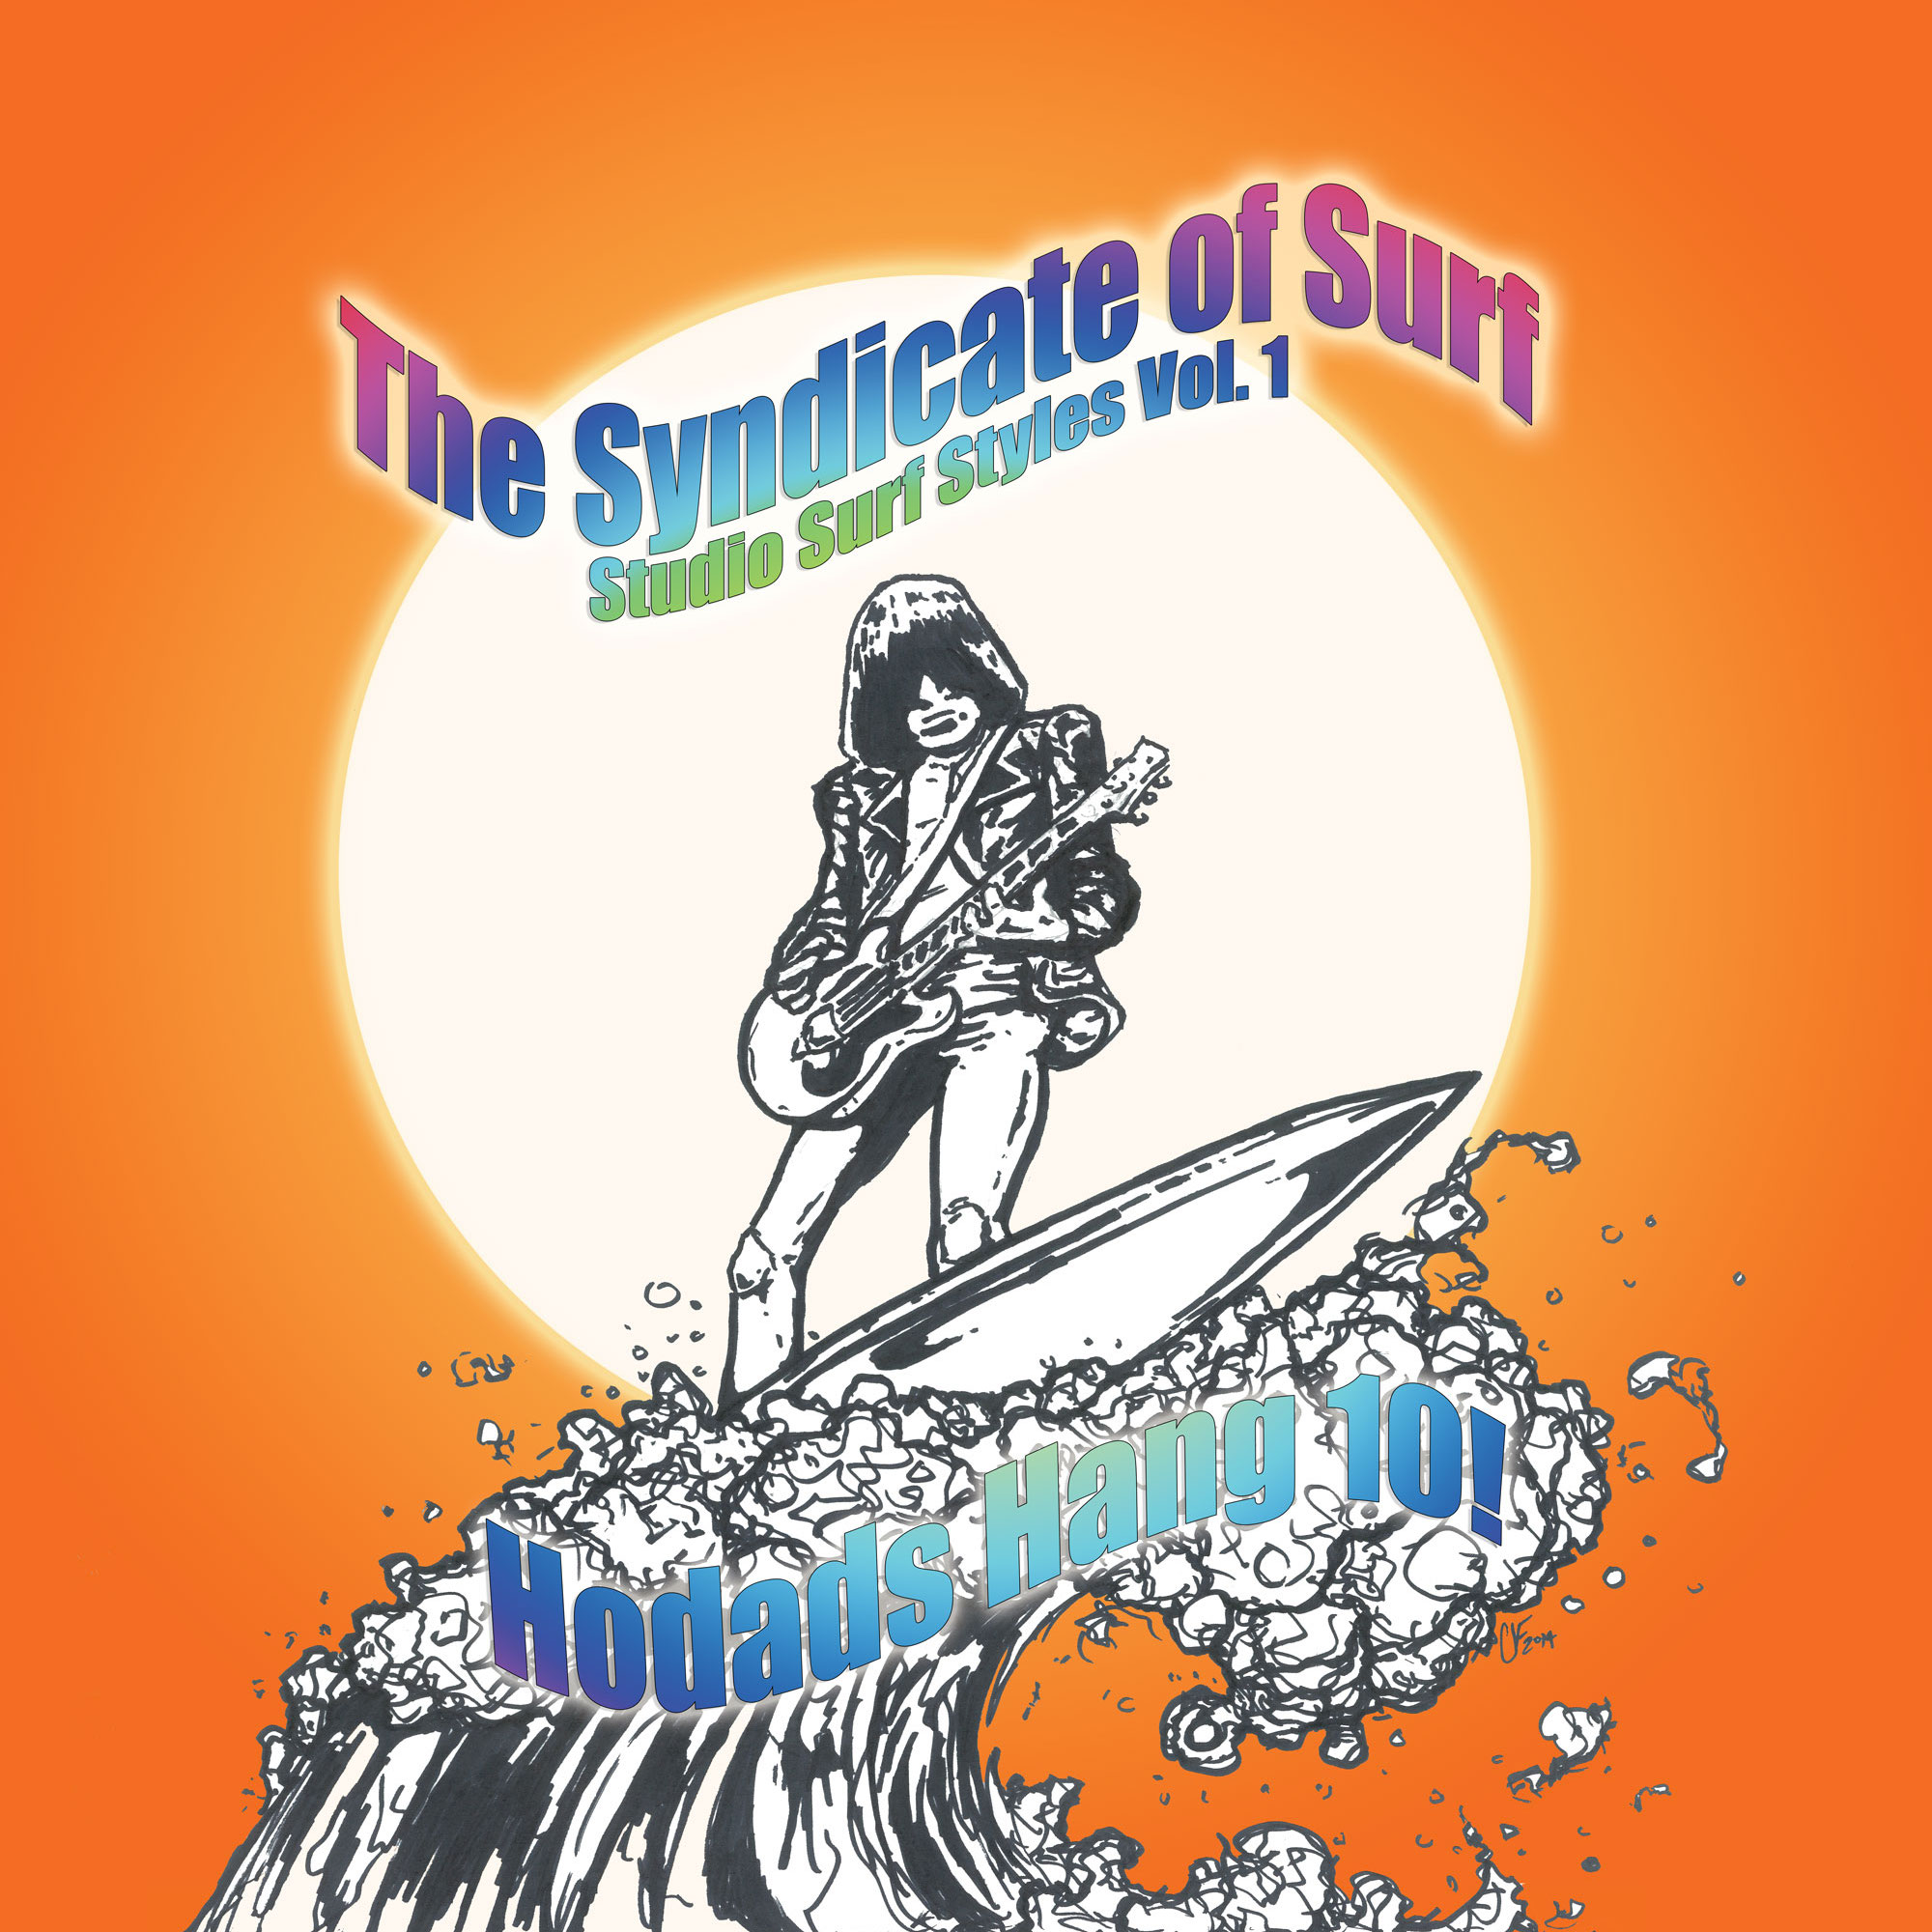 Studio Surf Styles Vol.1 Hodads Hang 10!